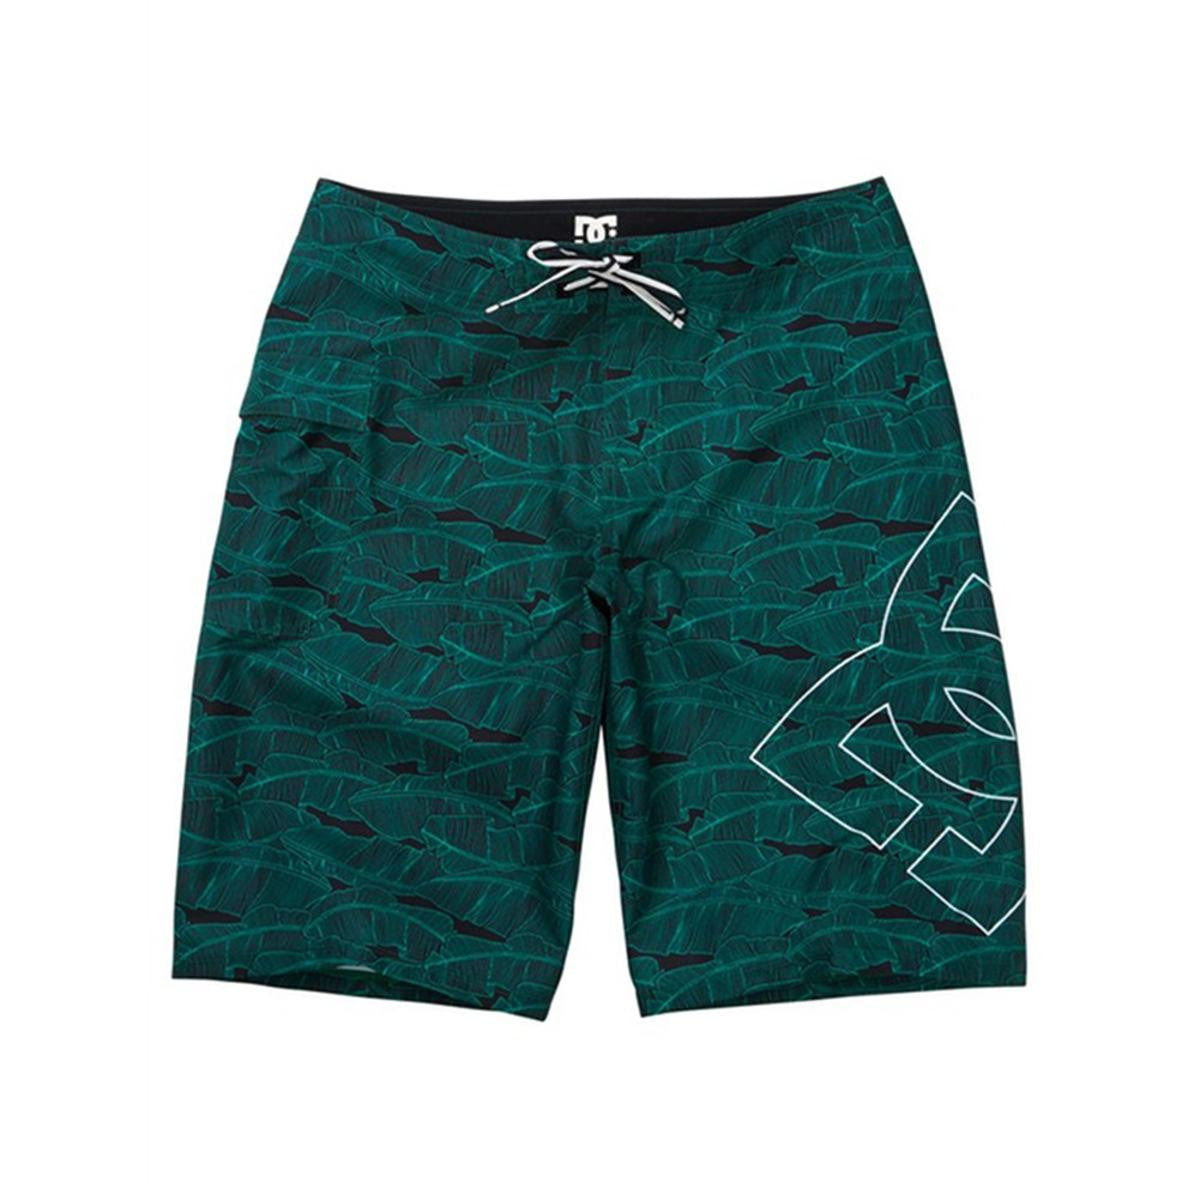 DC Lanai Essential 4 Boardshorts Mens Multiple Colors And Sizes New